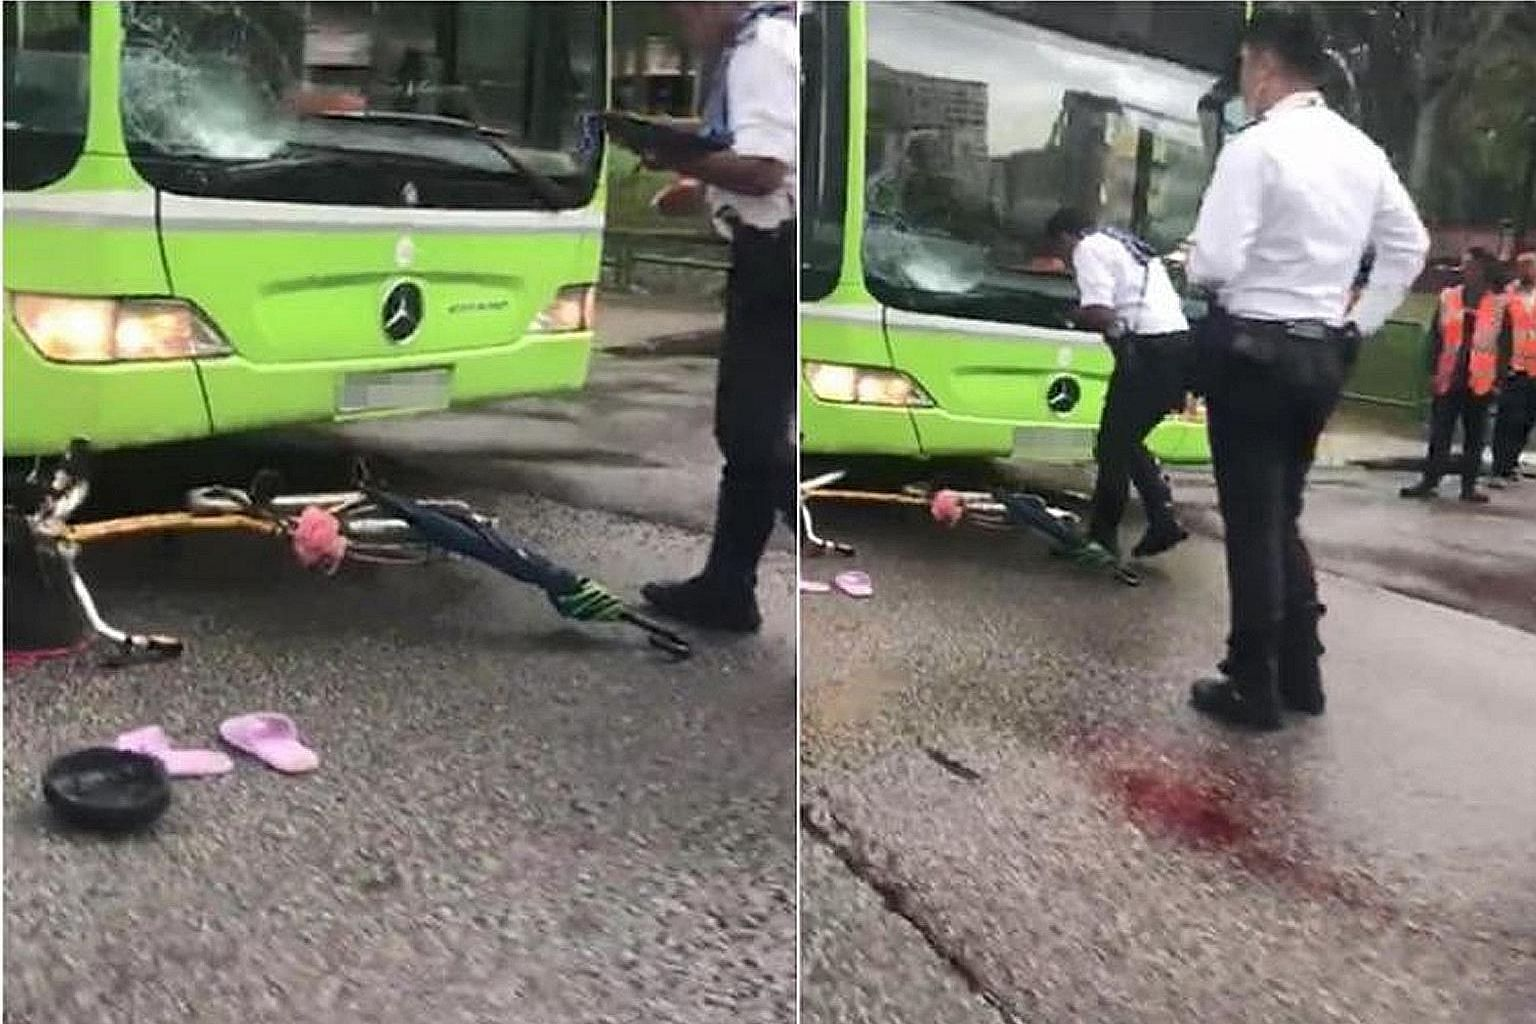 The accident took place in Yuan Ching Road shortly after noon on Tuesday. The 45-year-old cyclist was unconscious when she was taken to the National University Hospital. PHOTO: LIANHE WANBAO READER